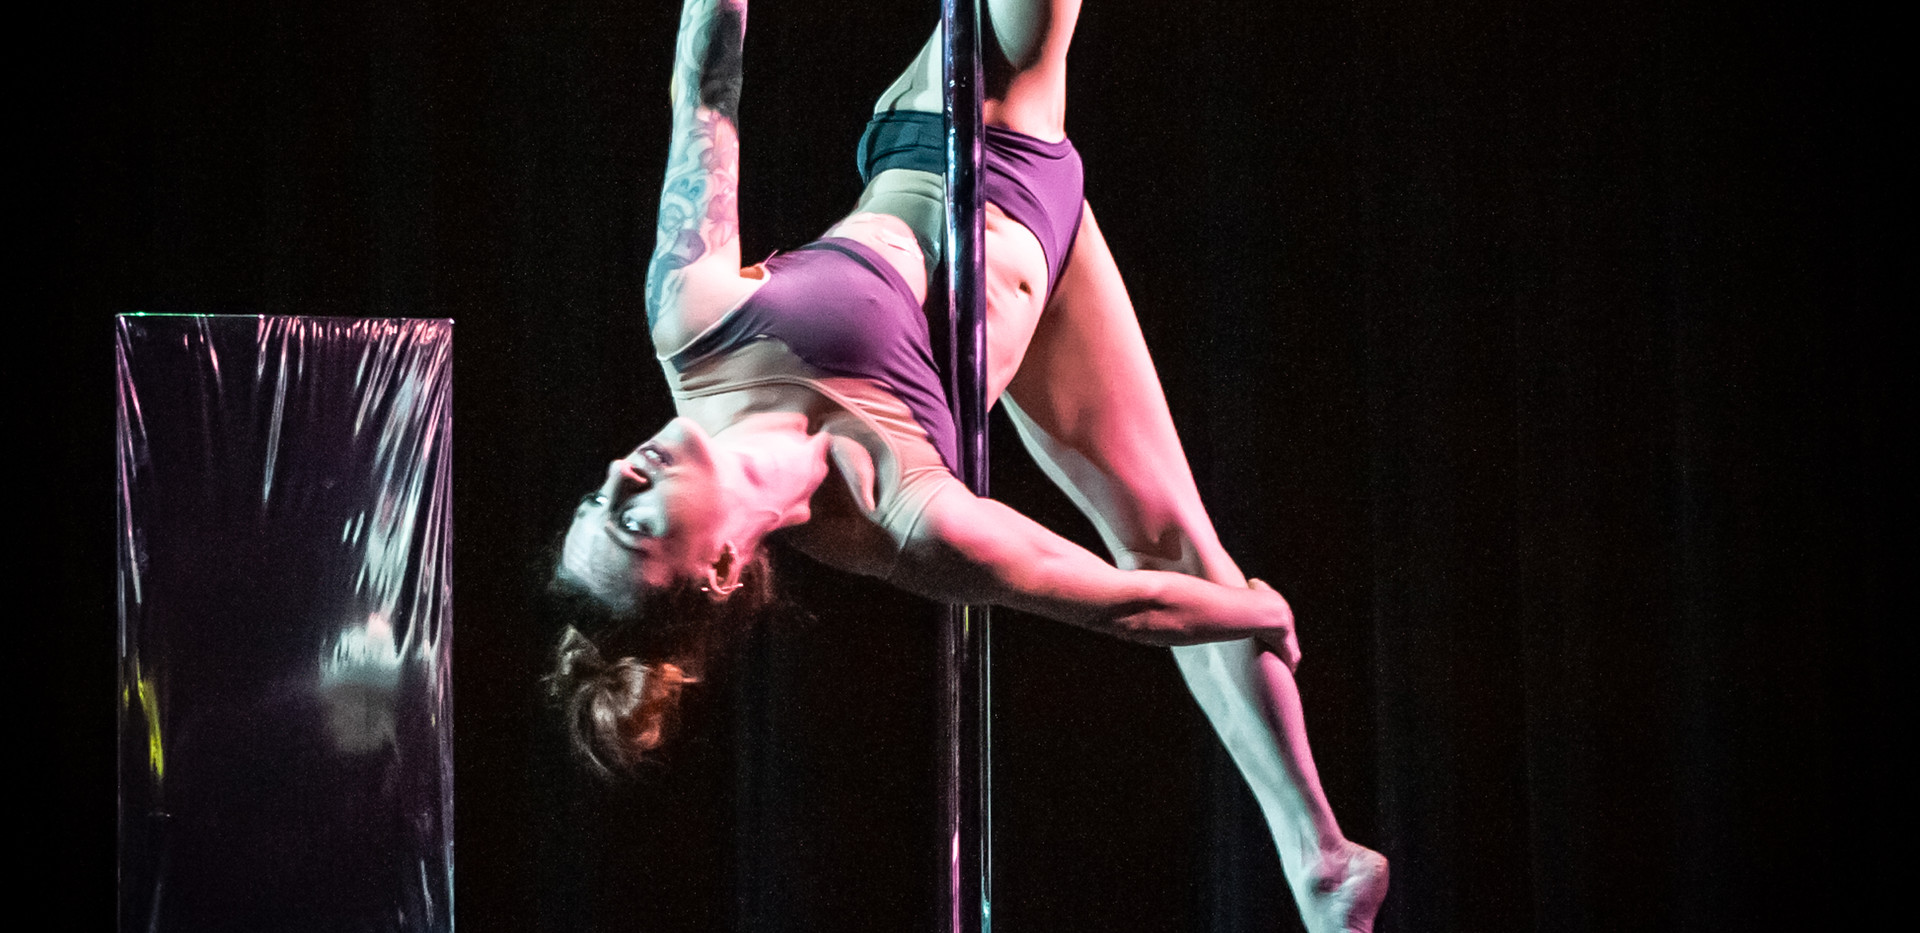 Jordan Mazur - 2018 Professional Pole Art Winner